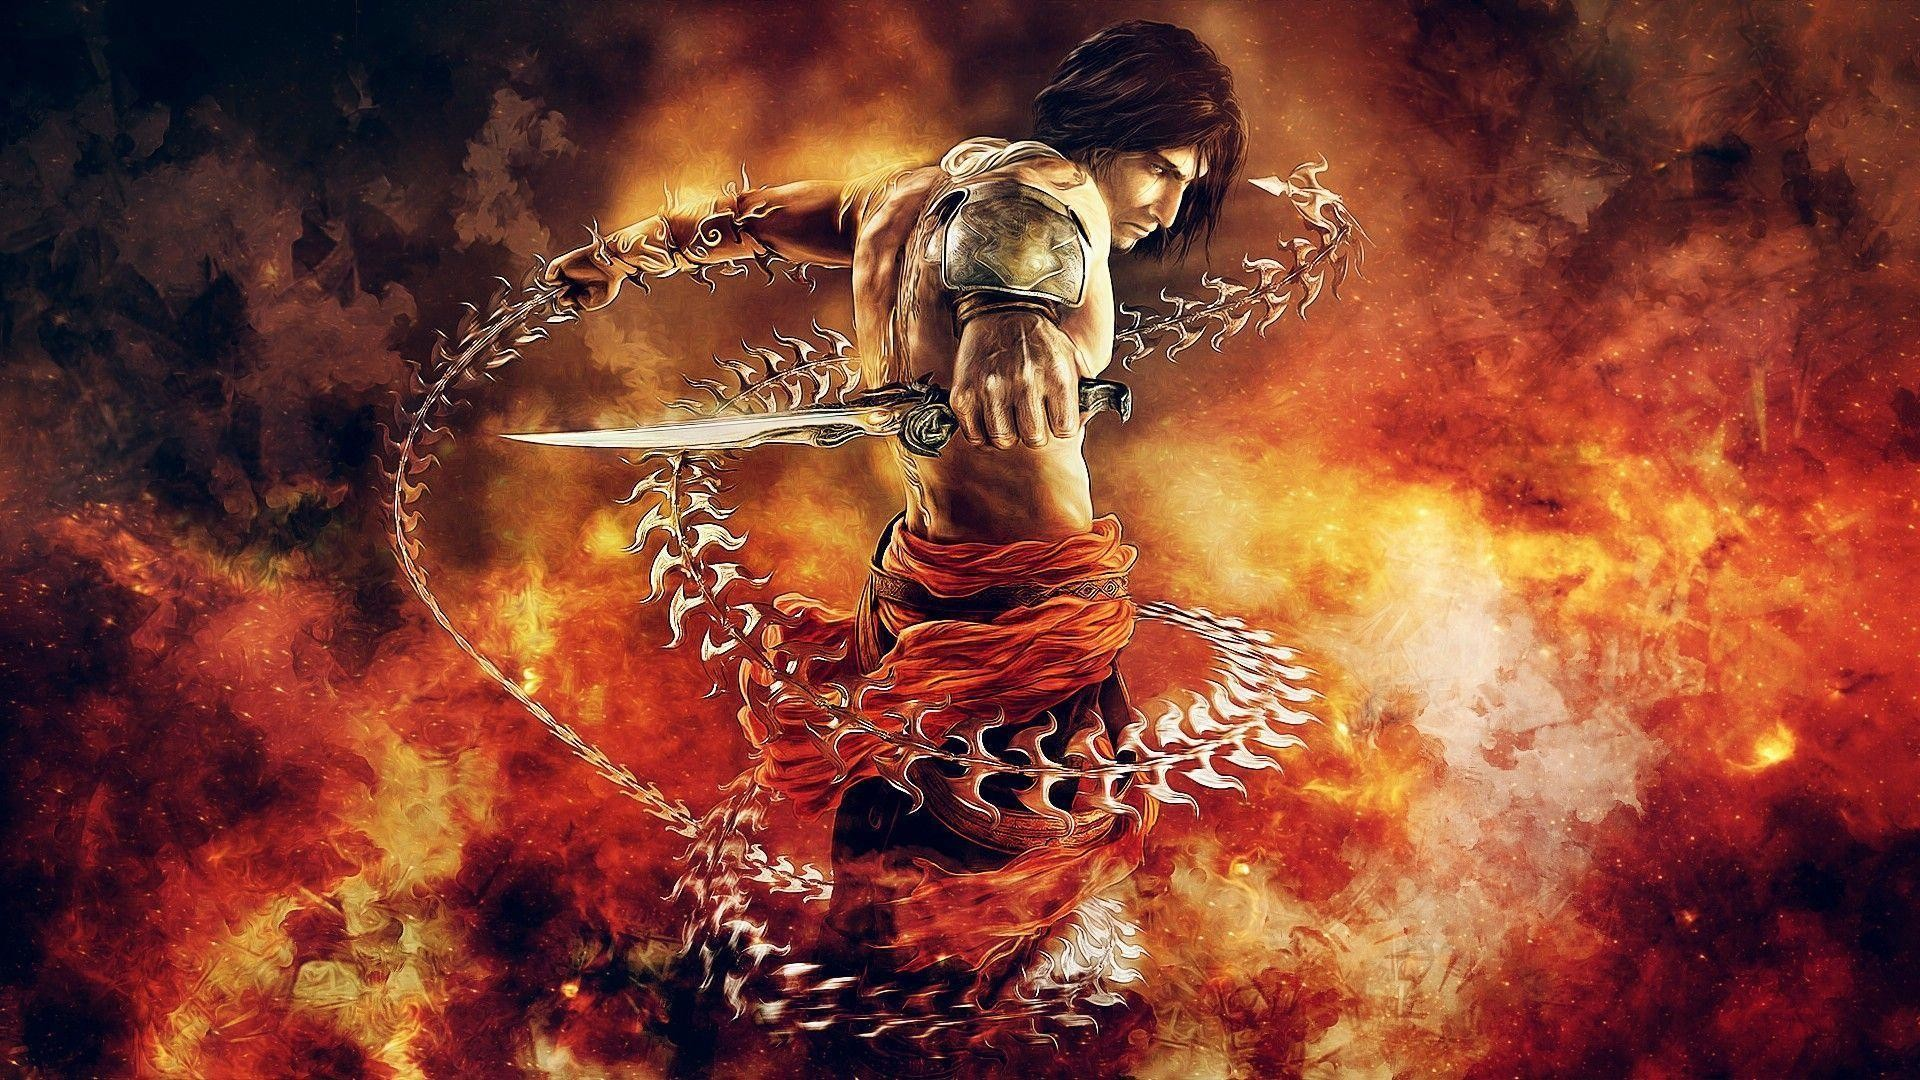 Prince Of Persia The Two Thrones HD Wallpapers and Background